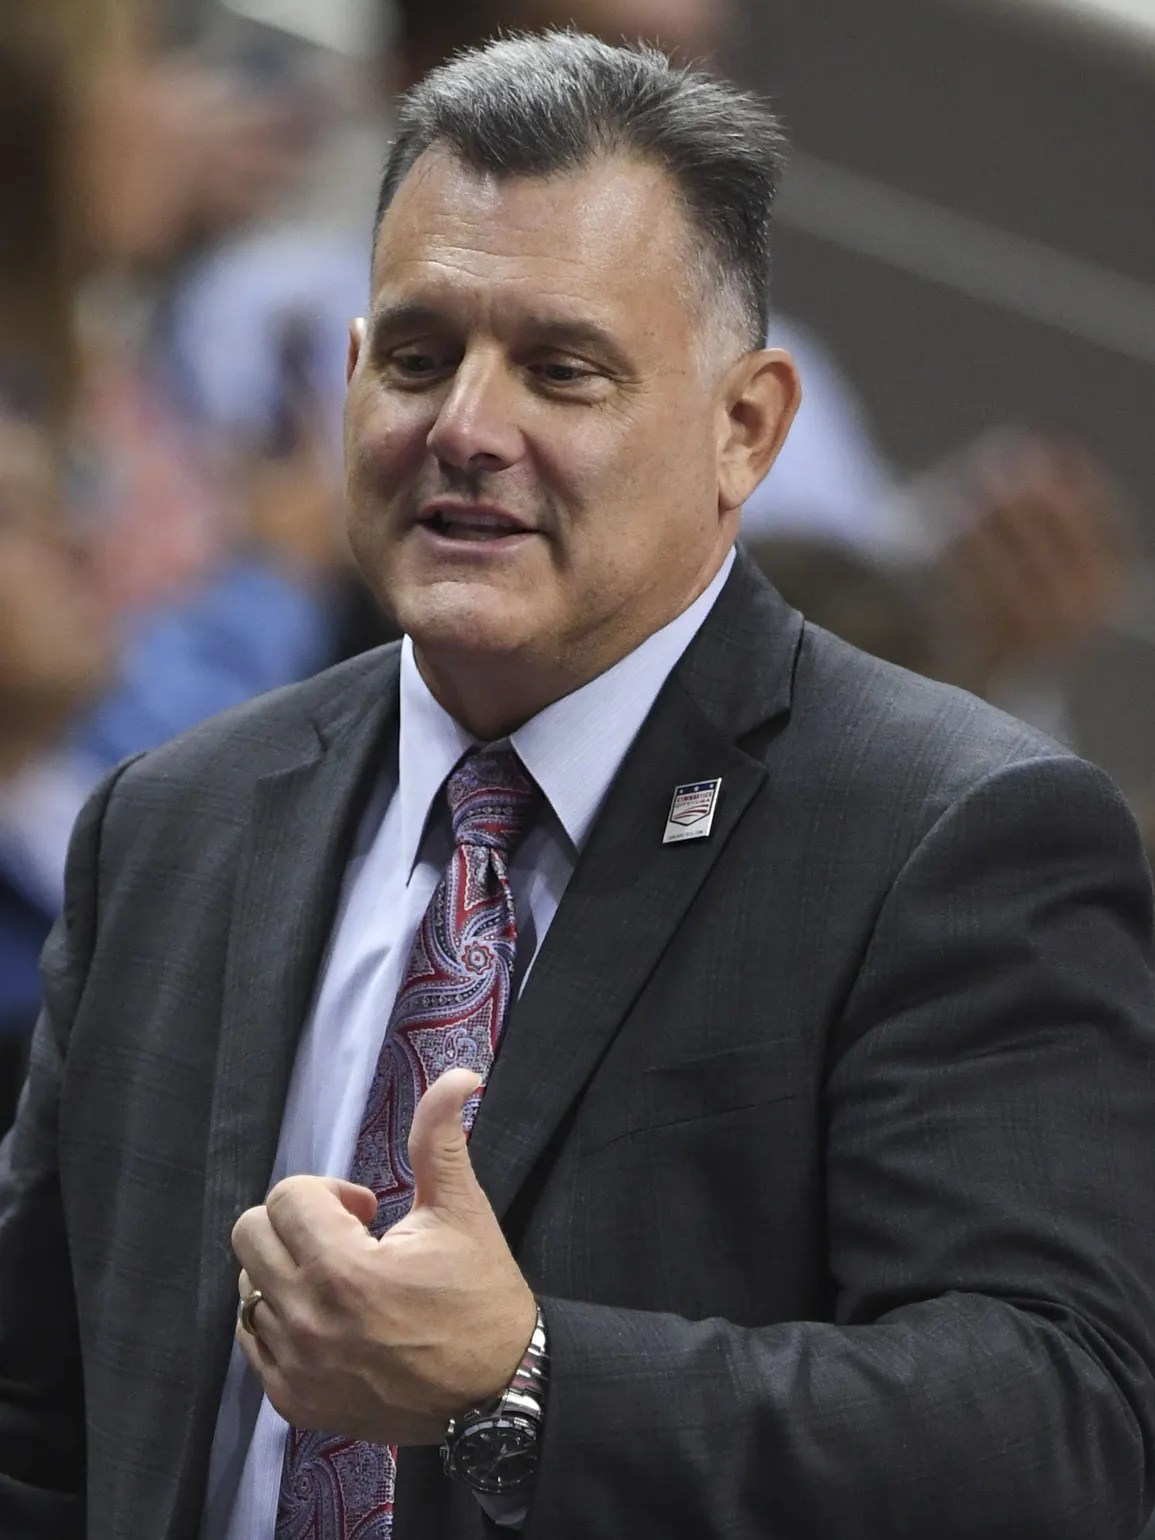 USA Gymnastics President Steve Penny during the women's